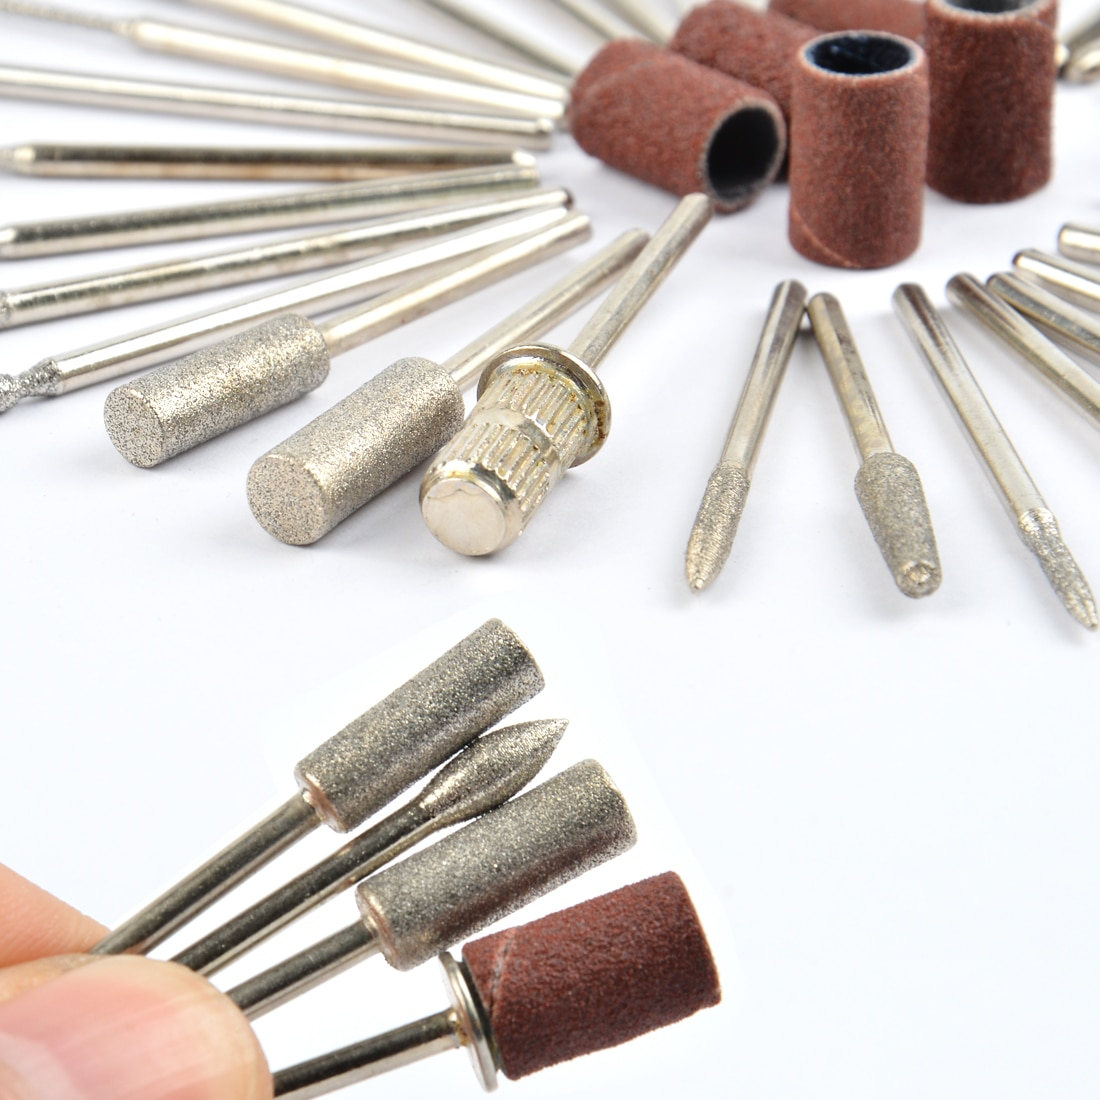 10pcs diamond cutters for manicure set nail drill bits set milling cutters for pedicure electric manicure drill accessory tools 36pcs Diamond Nail Drill Bit Set for Electric Manicure Rotary Pedicure Milling Cutters Gel Cleaner Nail Tools Accessories